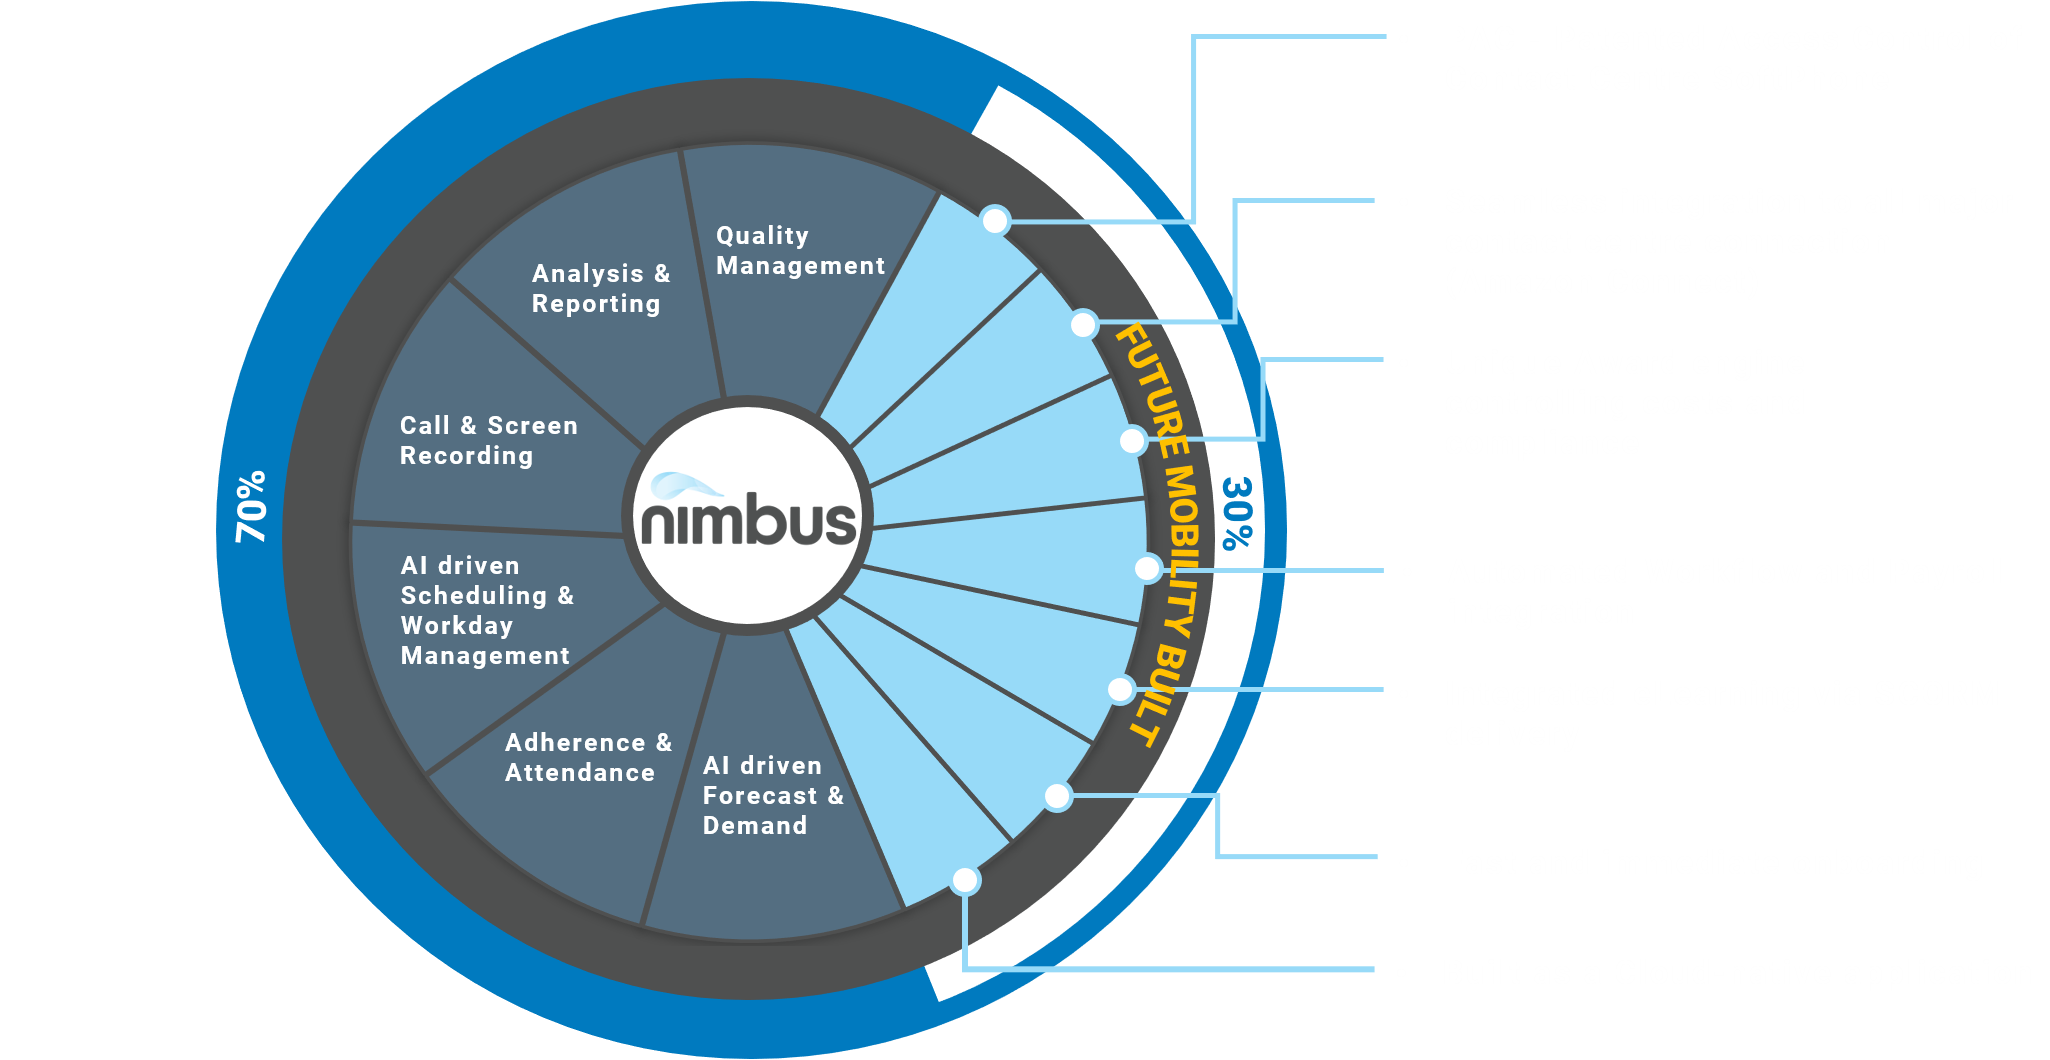 WorkforceManagement-nimbus-PointsofDifference-FutureBuilt